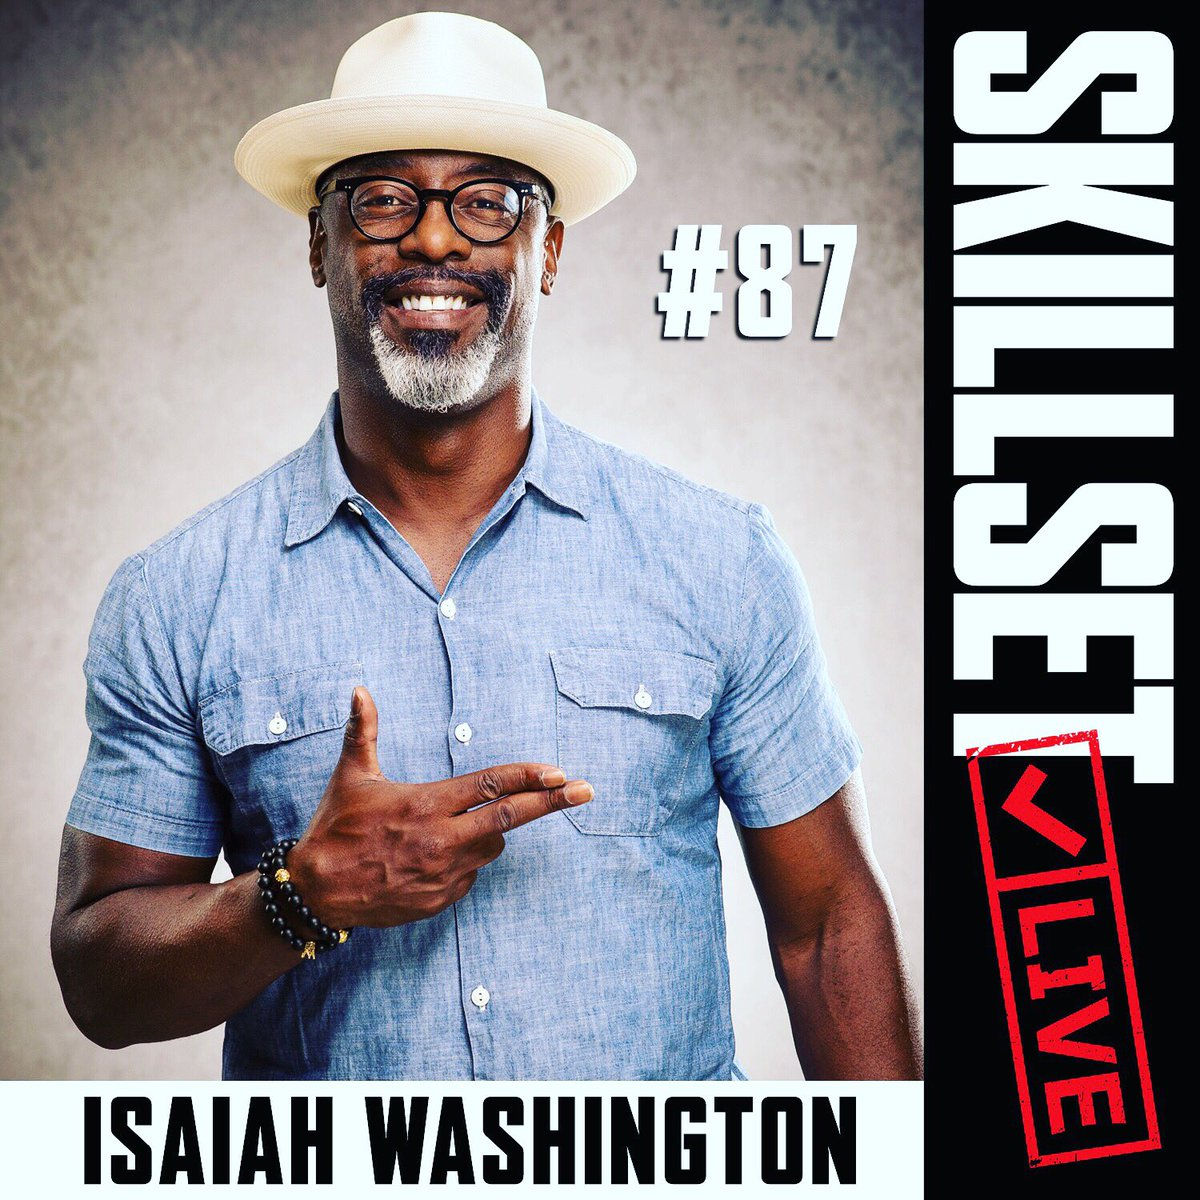 Acclaimed actor, Isaiah Washington joins the Skillset crew to talk firearms, military life and blazing a trail in Hollywood…his way. On @iTunes  @Spotify @SoundCloud @GooglePlay @iHeartRadio THIS: https://t.co/ijAaKpDYPK